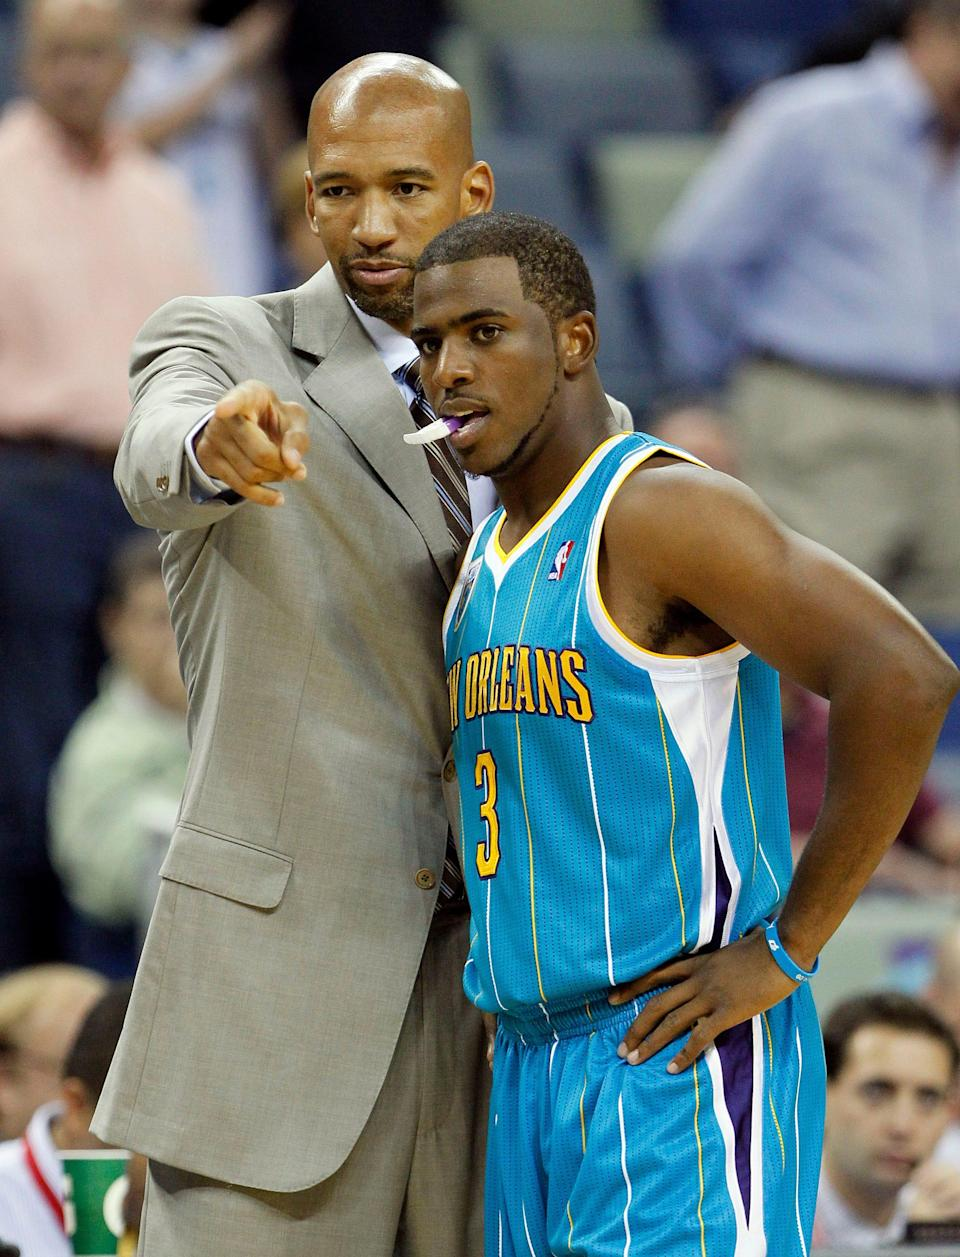 Monty Williams said he was forced to change his ways from the first time he coached Chris Paul in New Orleans.